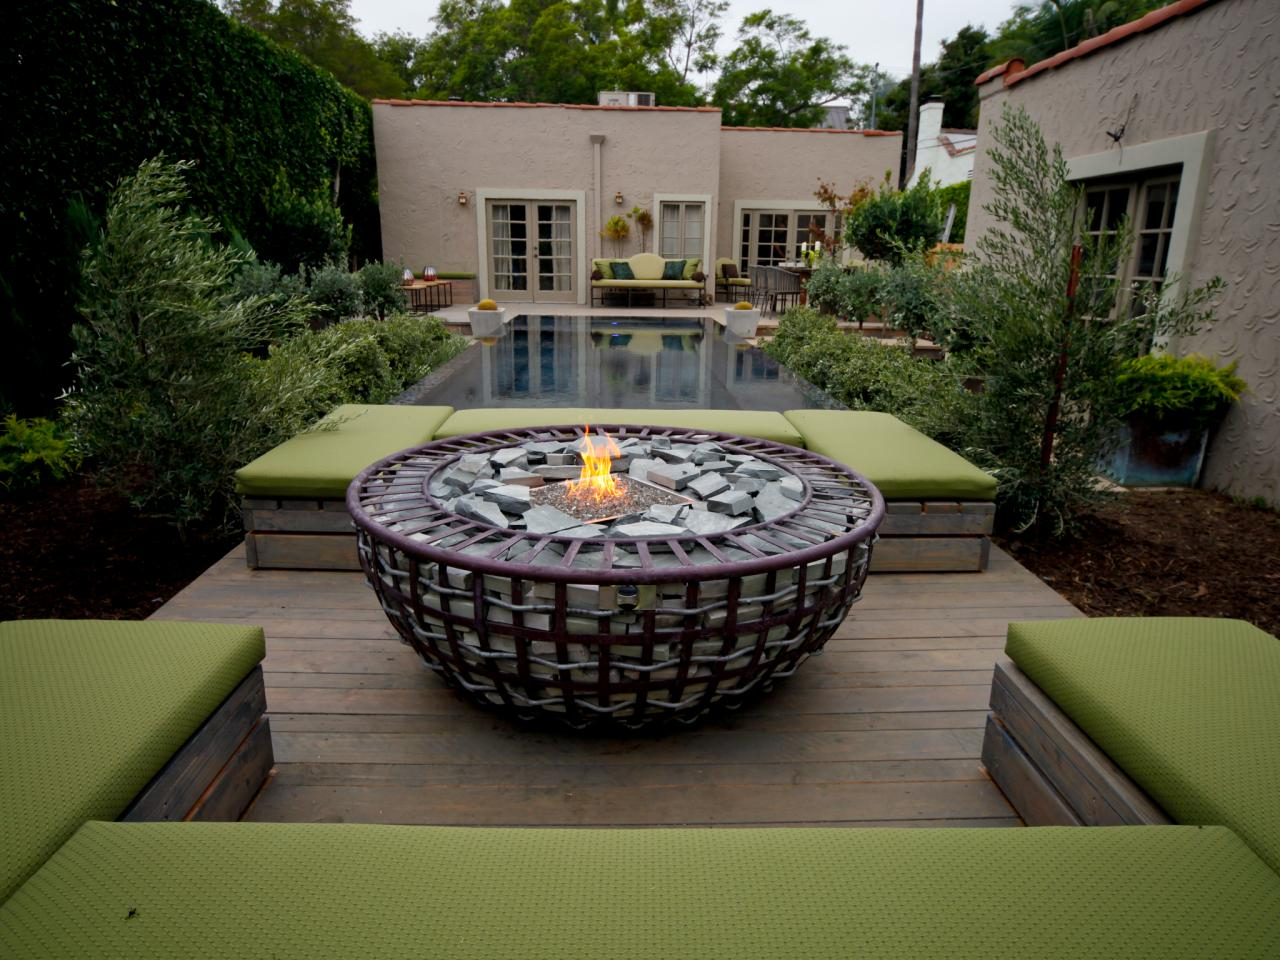 Outdoor Fire Pits And Pit Safety Landscaping Ideas Within Size 1280 X 960